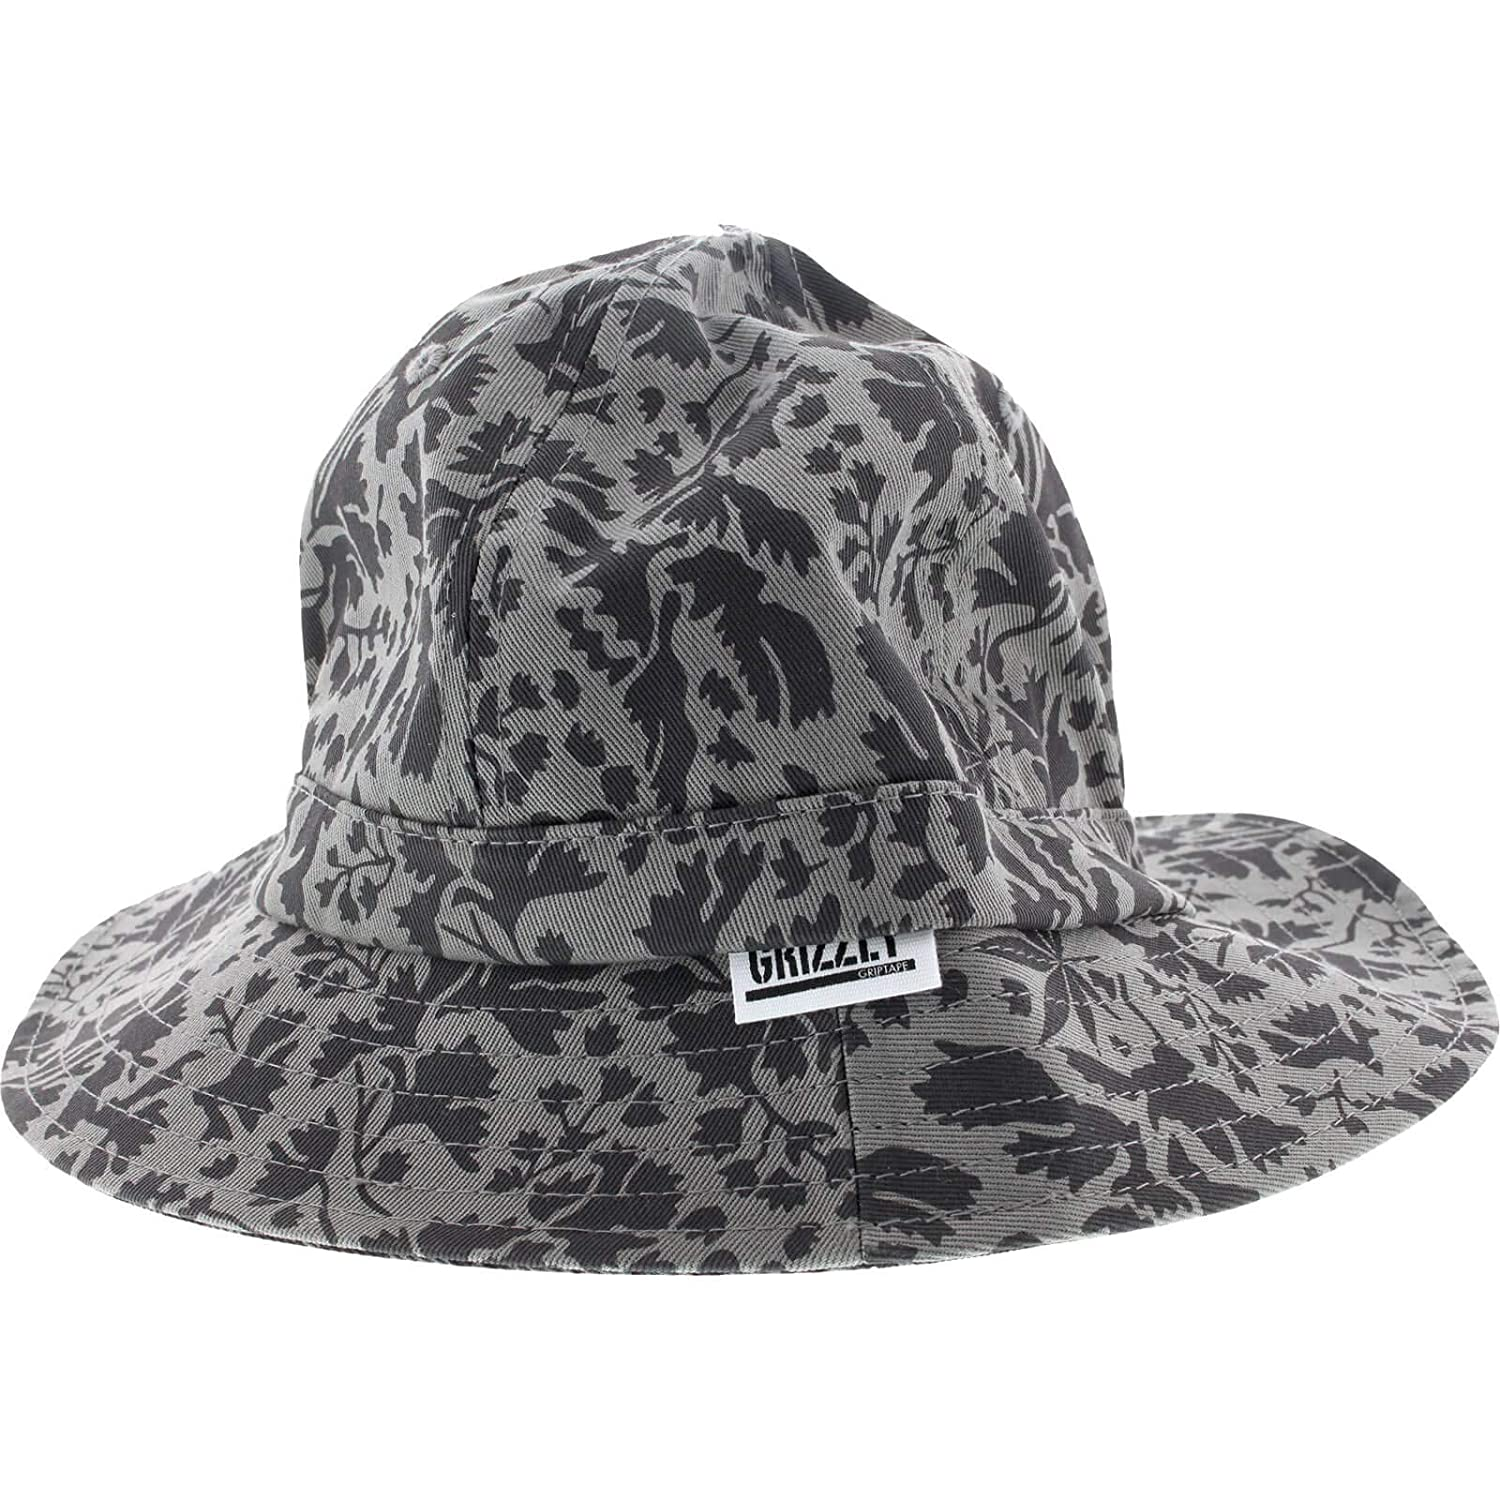 Grizzly Springfield camuflaje cubo L/xl-grey Skate sombrero ...